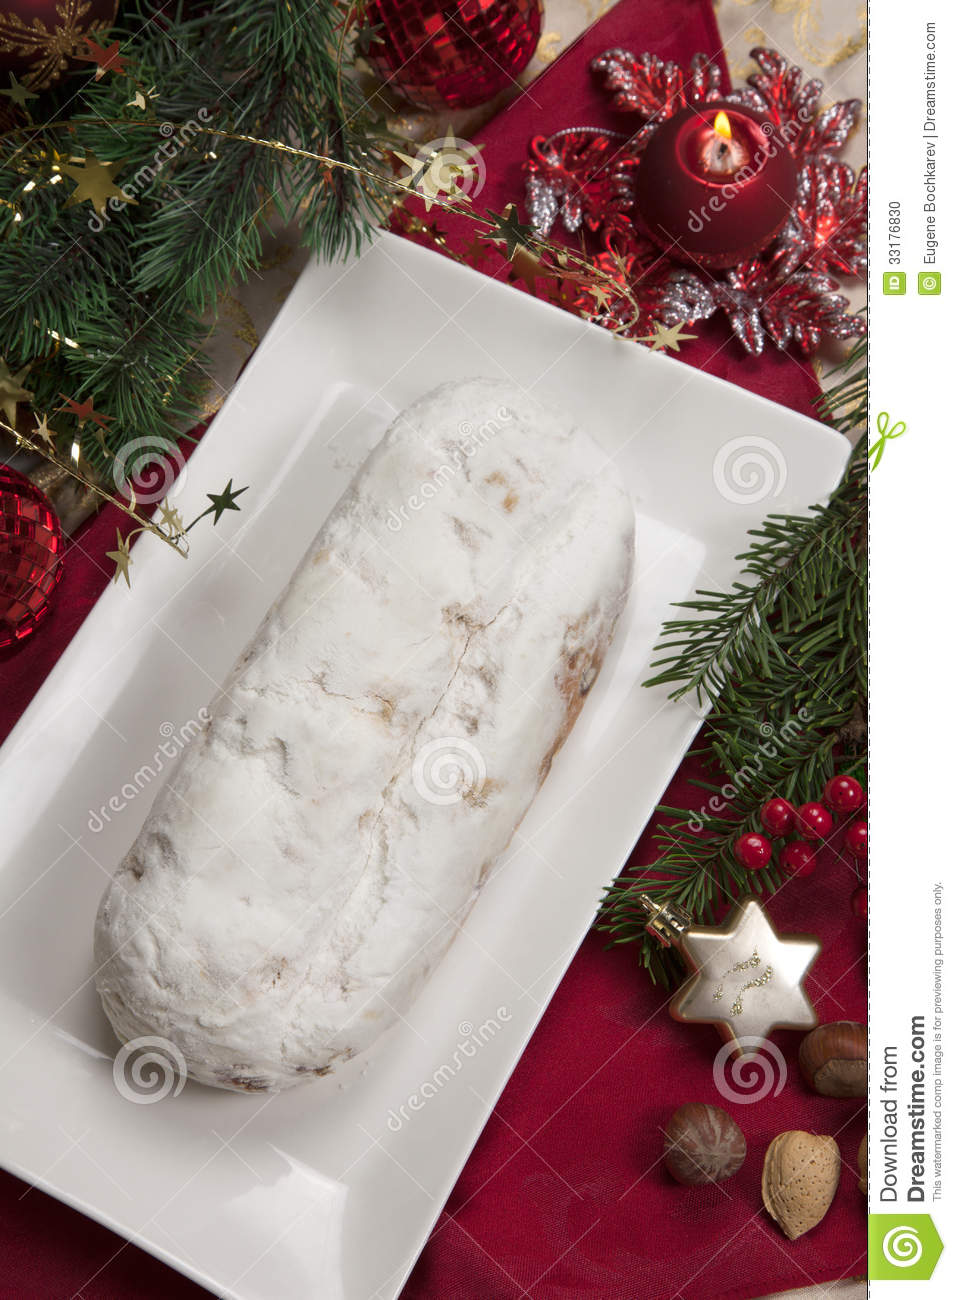 Stollen for christmas stock photo image 33176830 - Traditional german christmas tree decorations ...